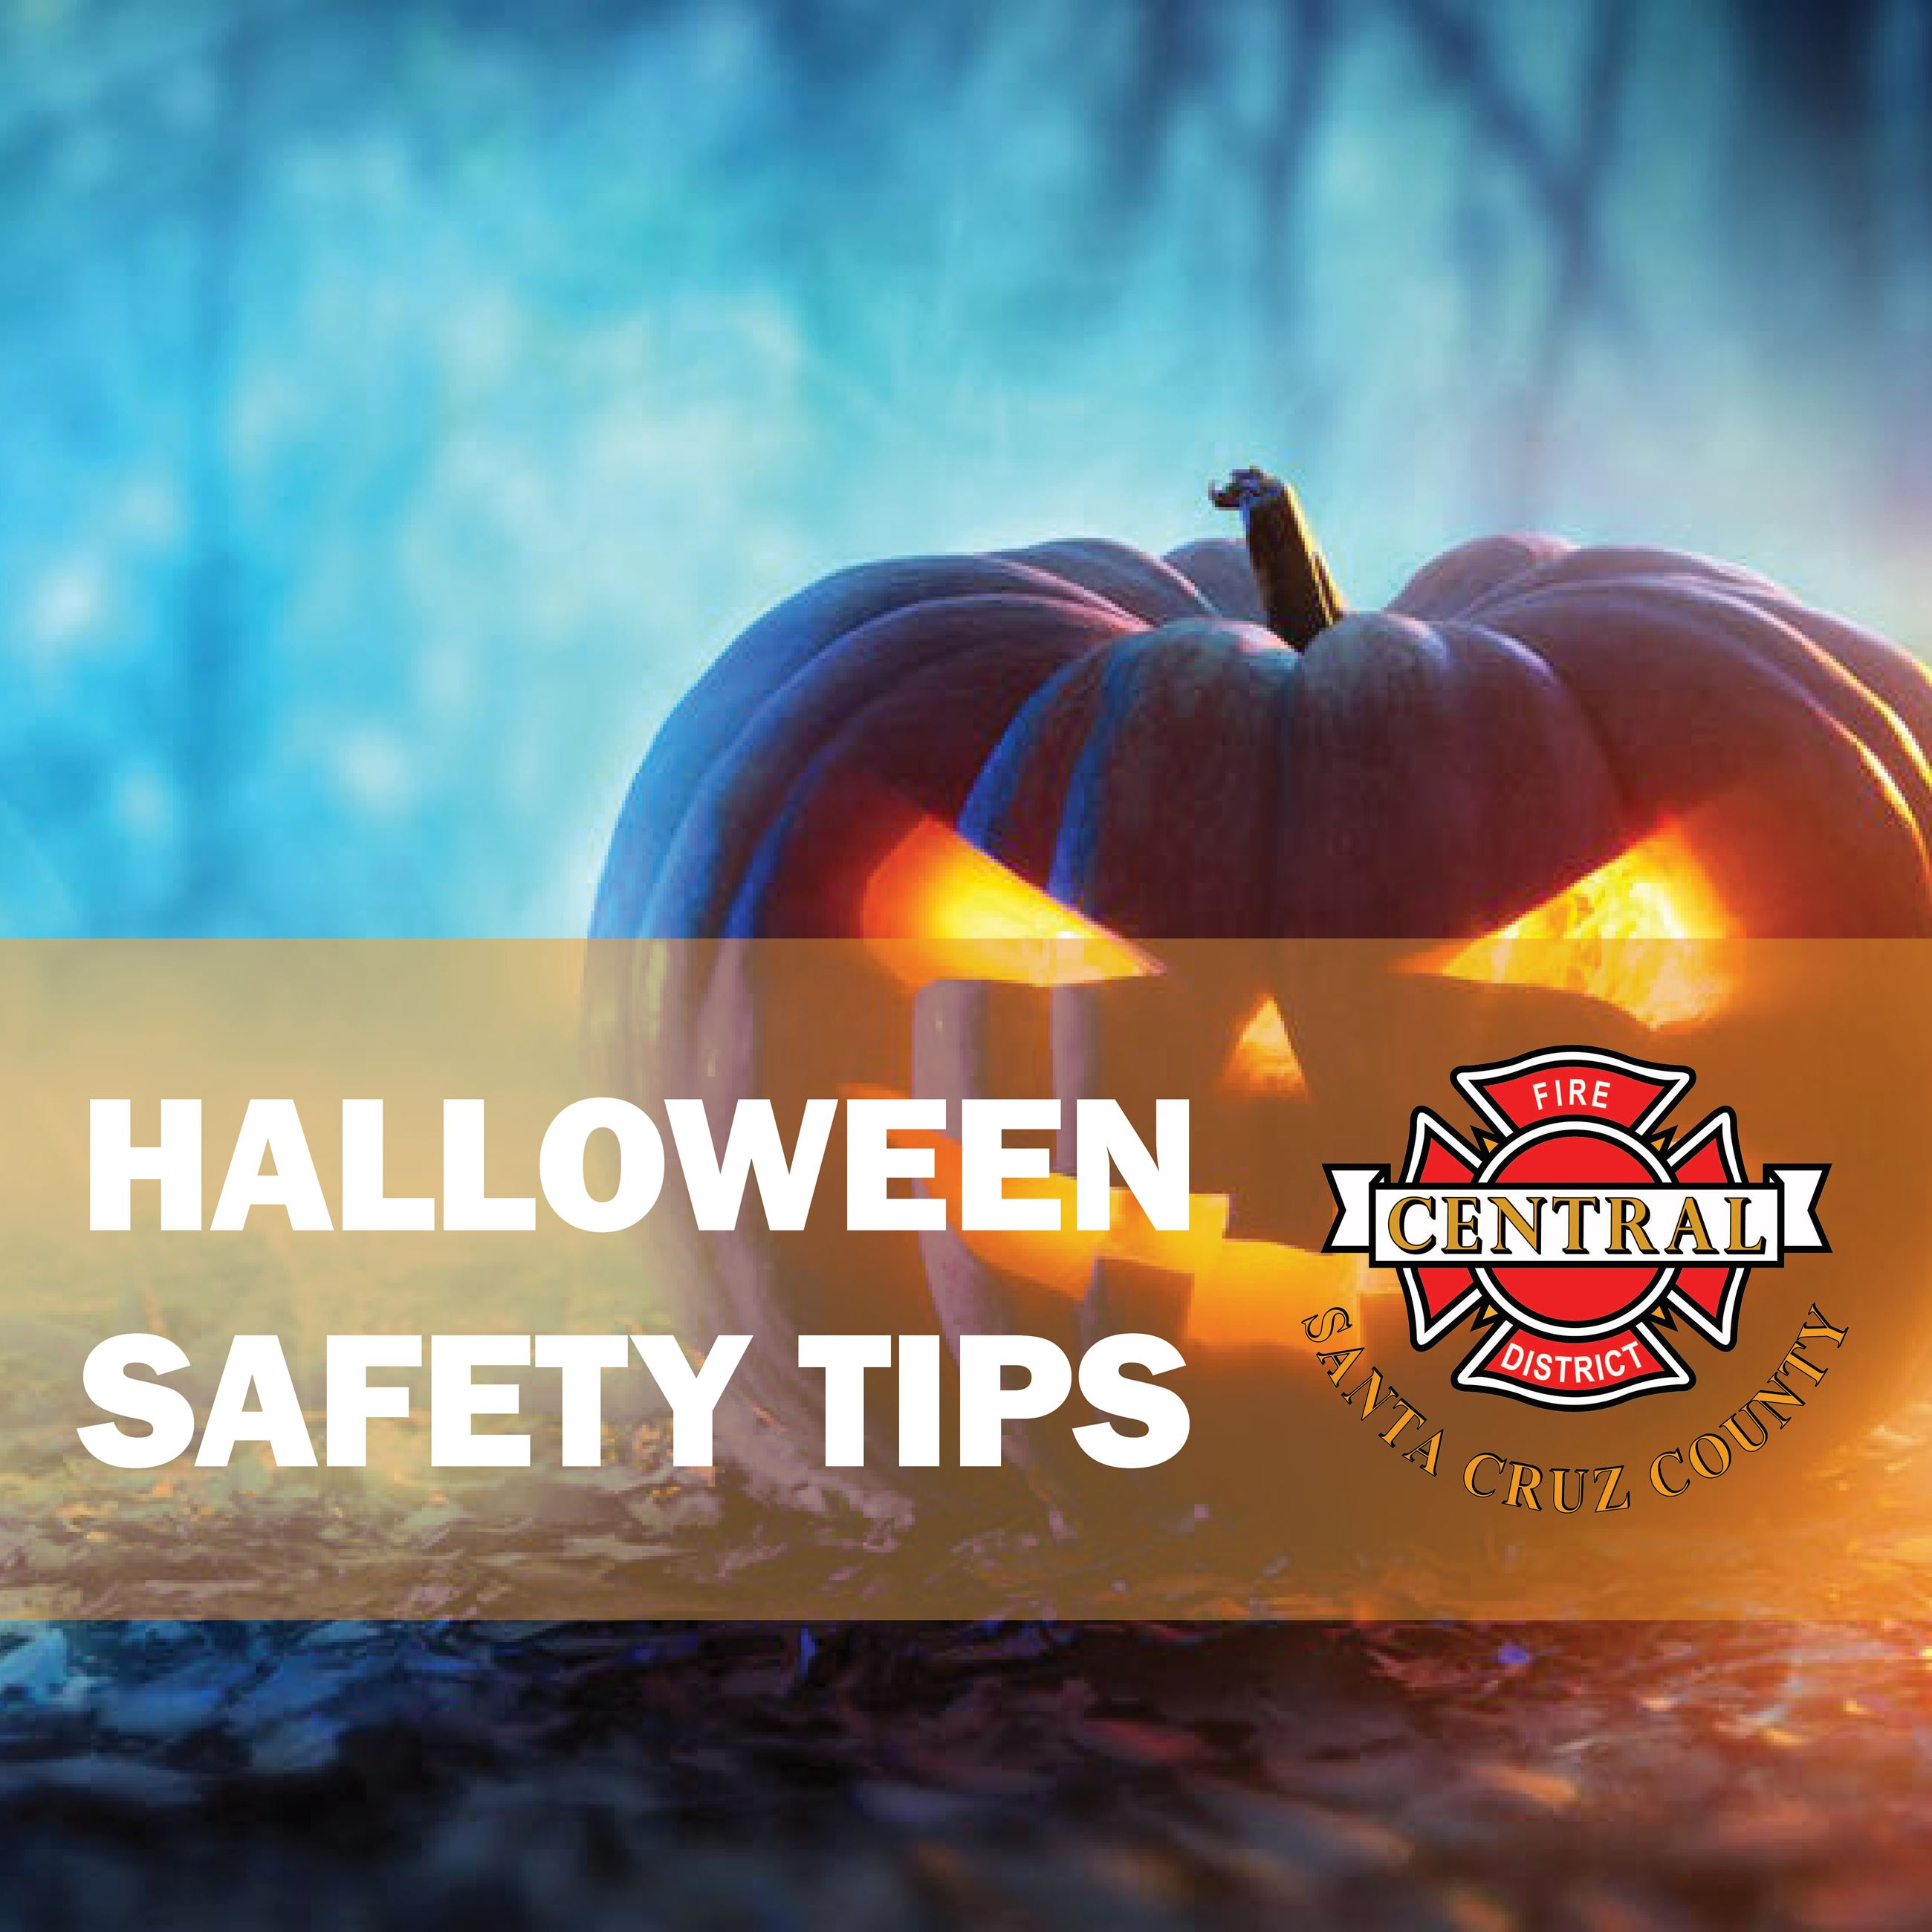 Halloween Safety Tips - Central Fire